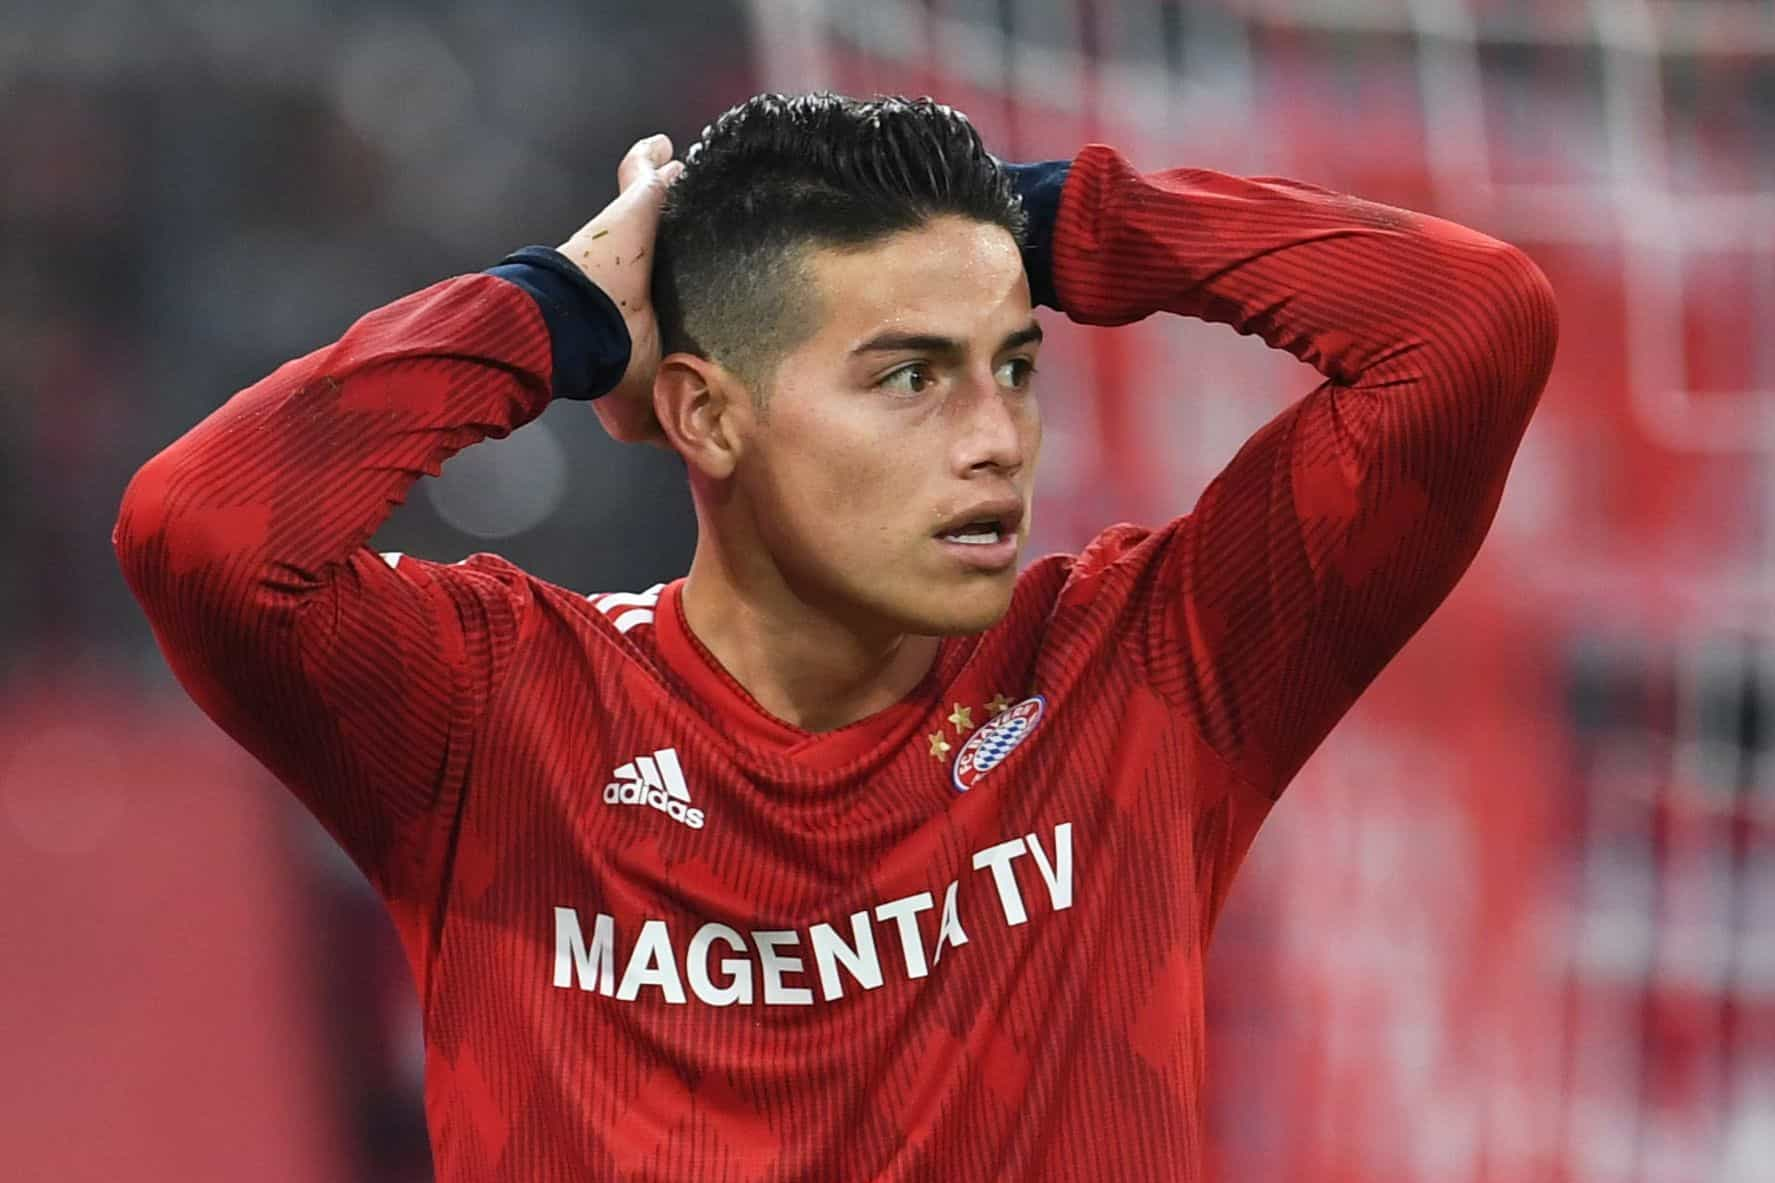 Bayern Munique impõe dieta de 13 regras a James Rodríguez